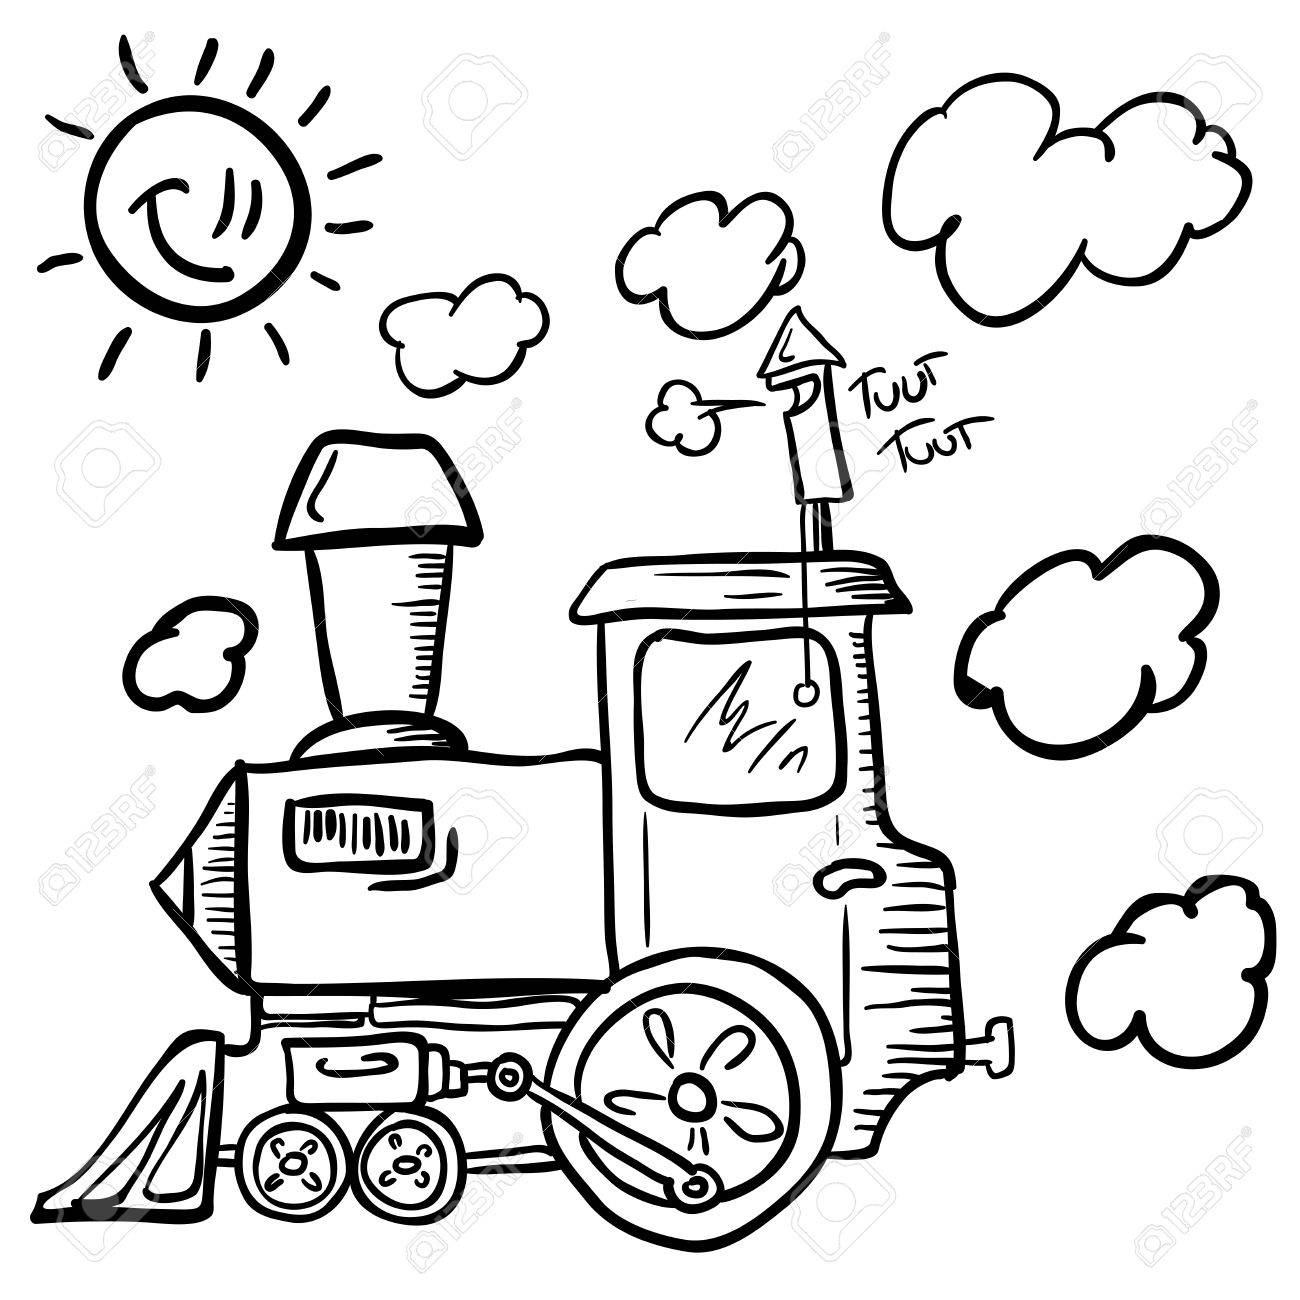 Thomas Train Coloring Pages Printable Cartoon Trains For Kids Group Child Ride Black And White Stock Vector Ilration Of Element